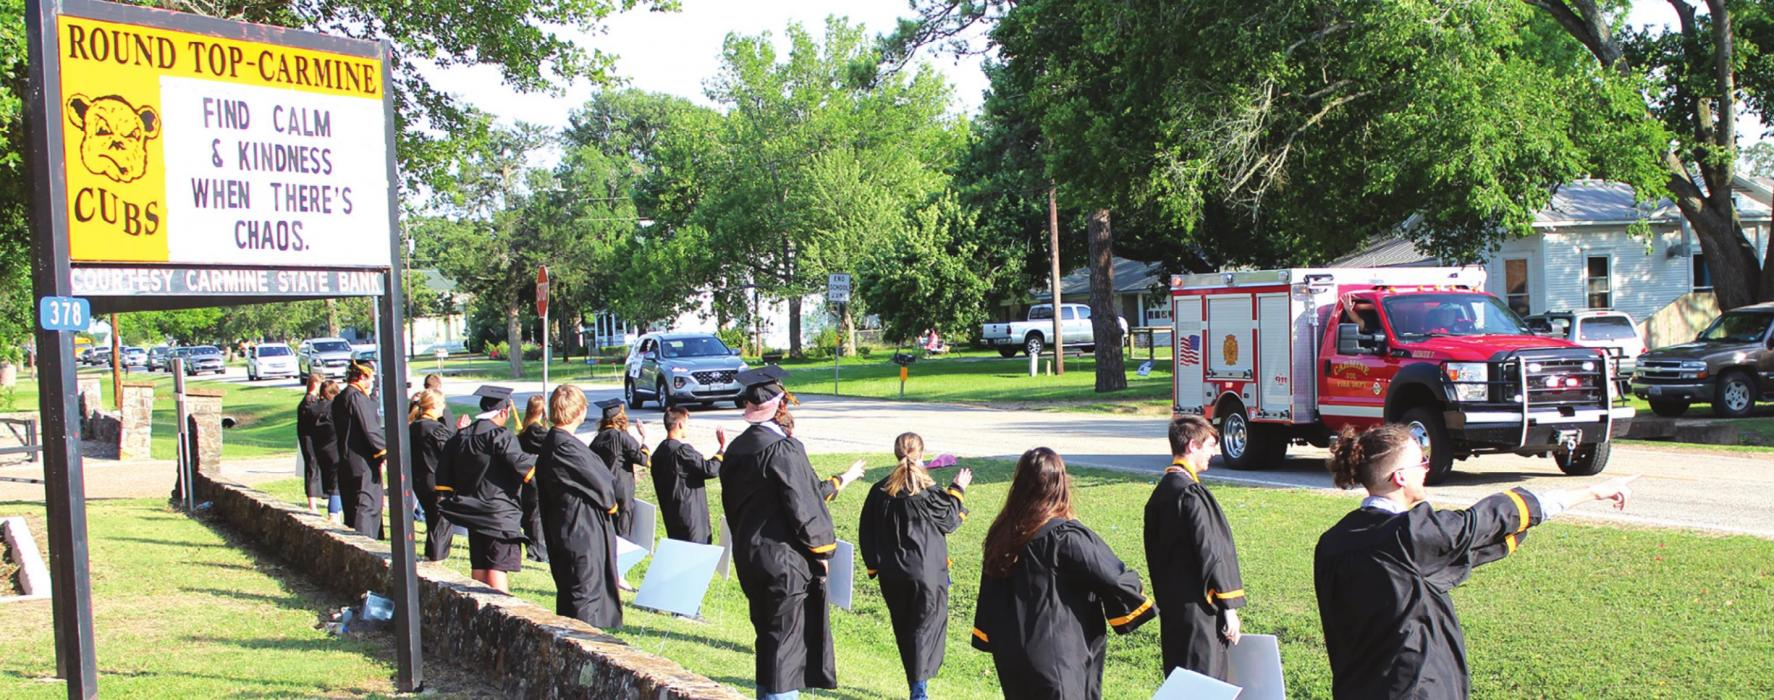 Members of the Round Top-Carmine senior class watch and wave as nearly 100 vehicles, many decorated with signs, balloons, etc, rolled by the high school campus to cheer on the graduates. The event was organized to make up for some of the other senior events the class was going to miss out on because of coronavirus precautions. Photo by Jeff Wick